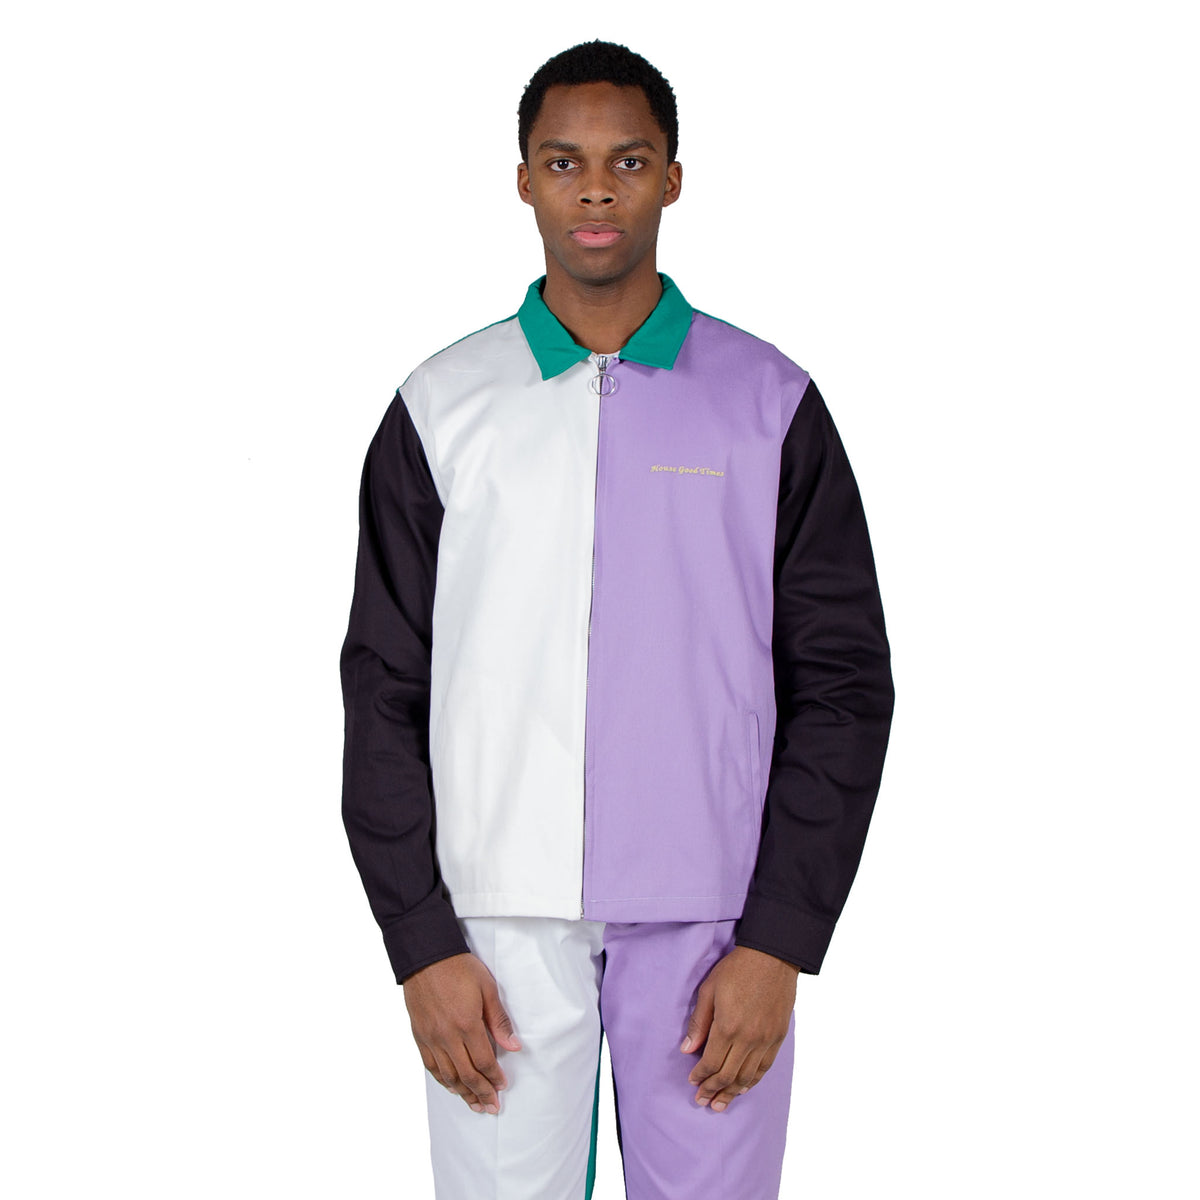 Club Jacket - Multicolor Block